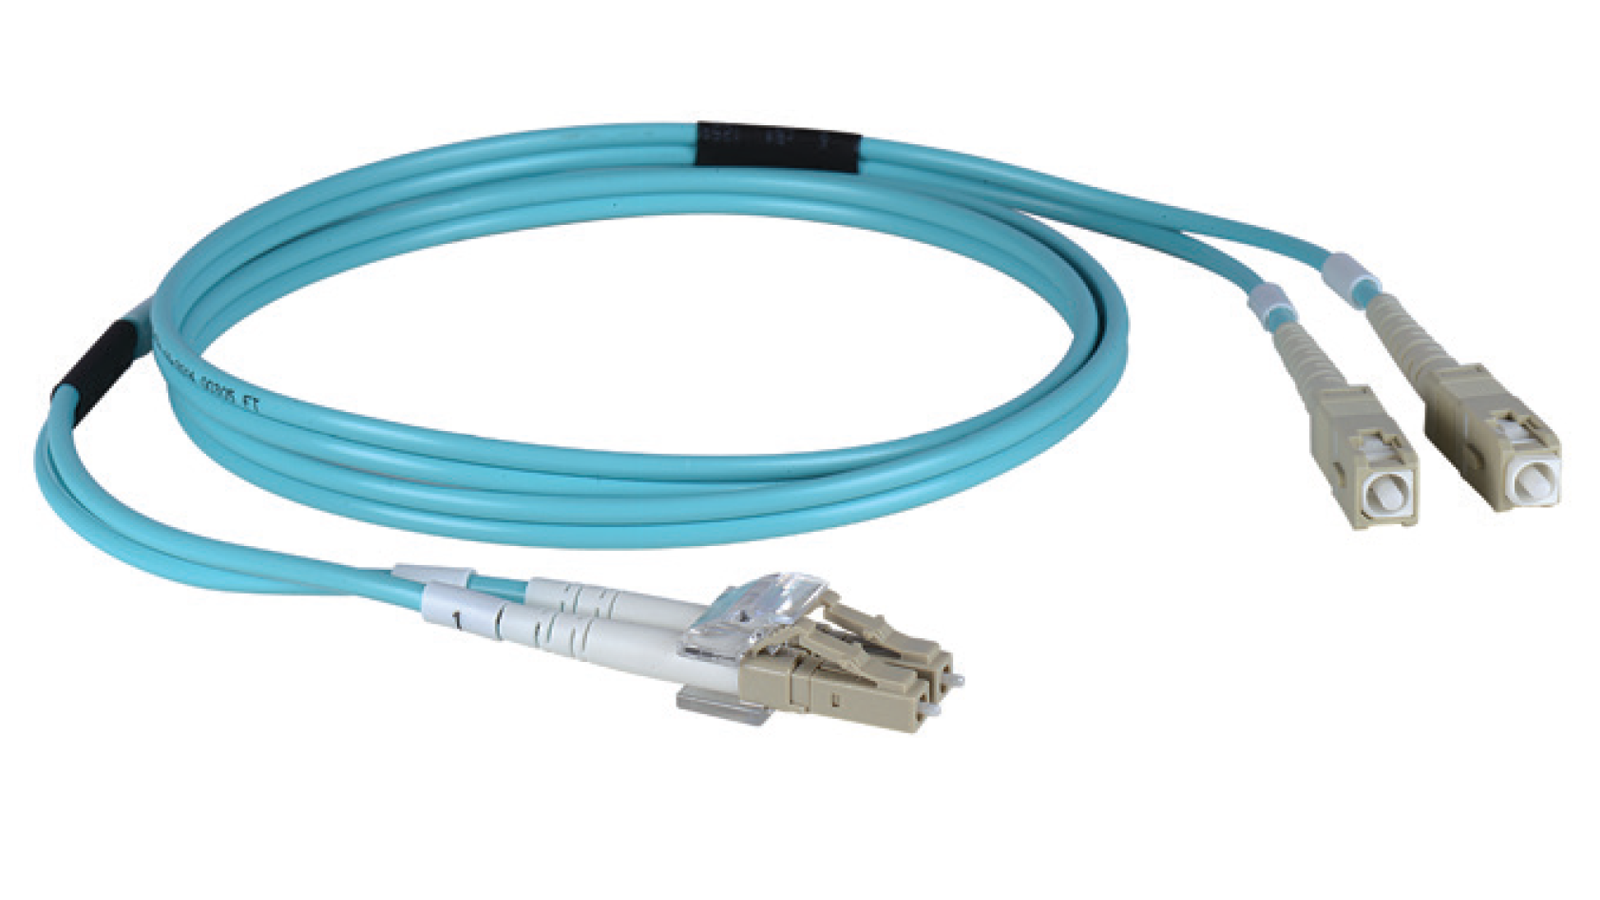 Dom3lcsc01m Stronger Safer Faster Ssf Lifetime Fiber Optic Wiring220voltaircompressor Routing Nema 6 30r Plug Cable From Air Patch Om3 Laser Optimized